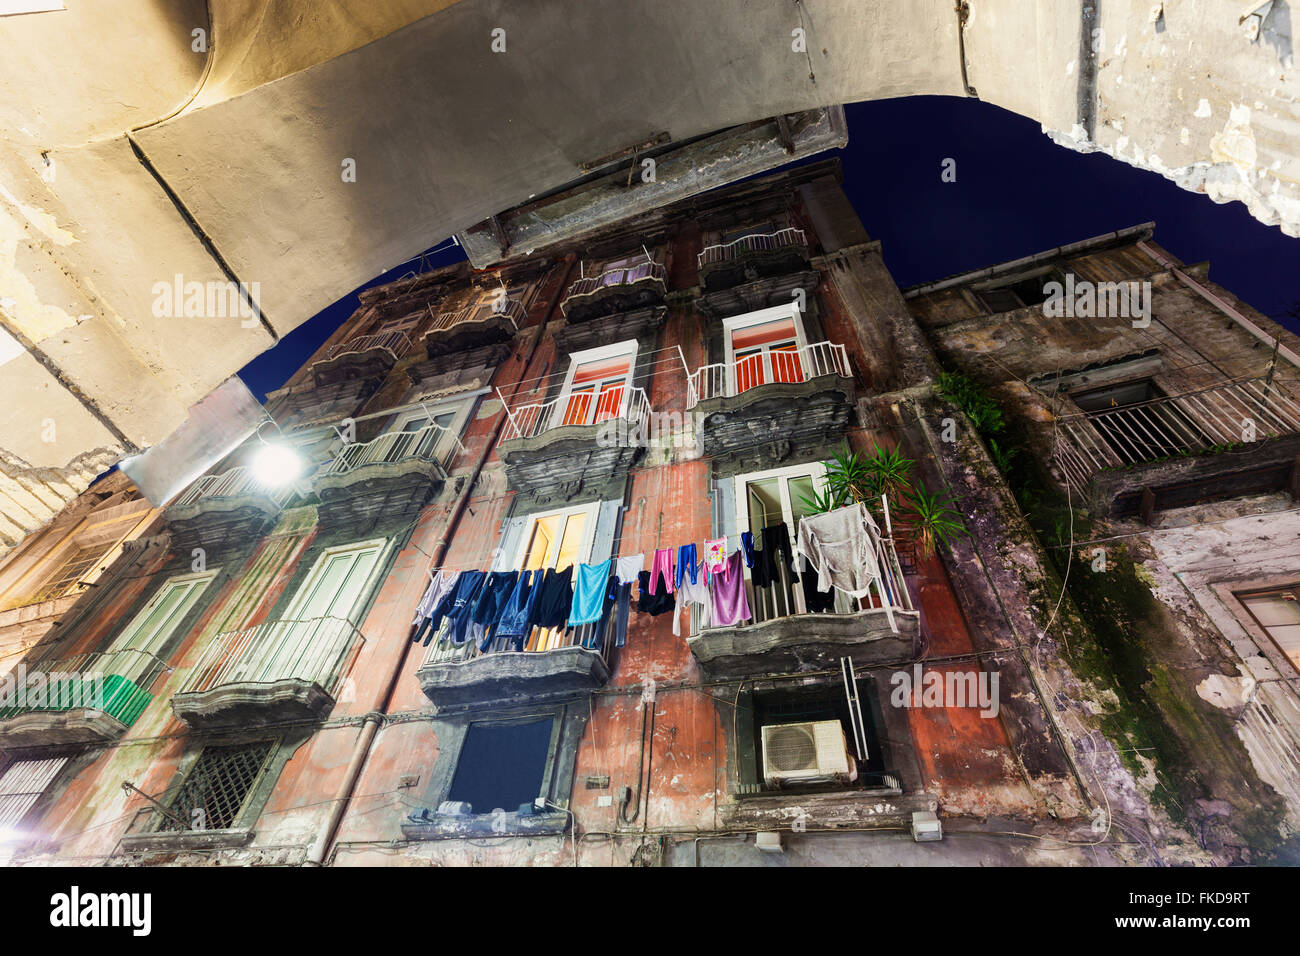 Low angle view of residential building with laundry on balconies - Stock Image